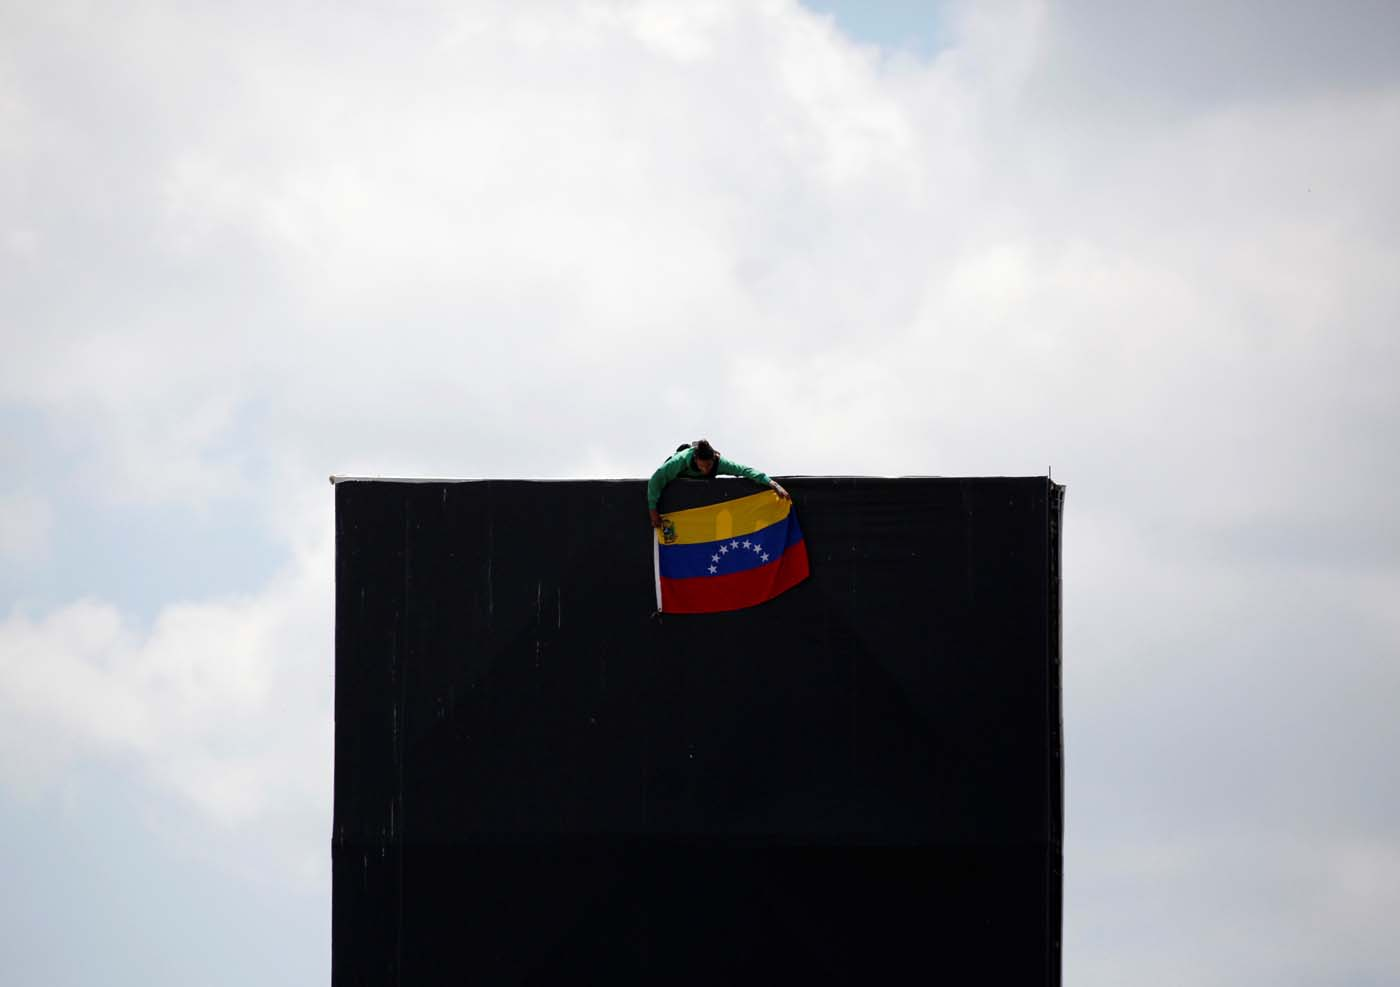 An opposition supporter hang a national flag on top of an advertising structure while rallying against President Nicolas Maduro in Caracas, Venezuela, May 20, 2017. REUTERS/Carlos Garcia Rawlins